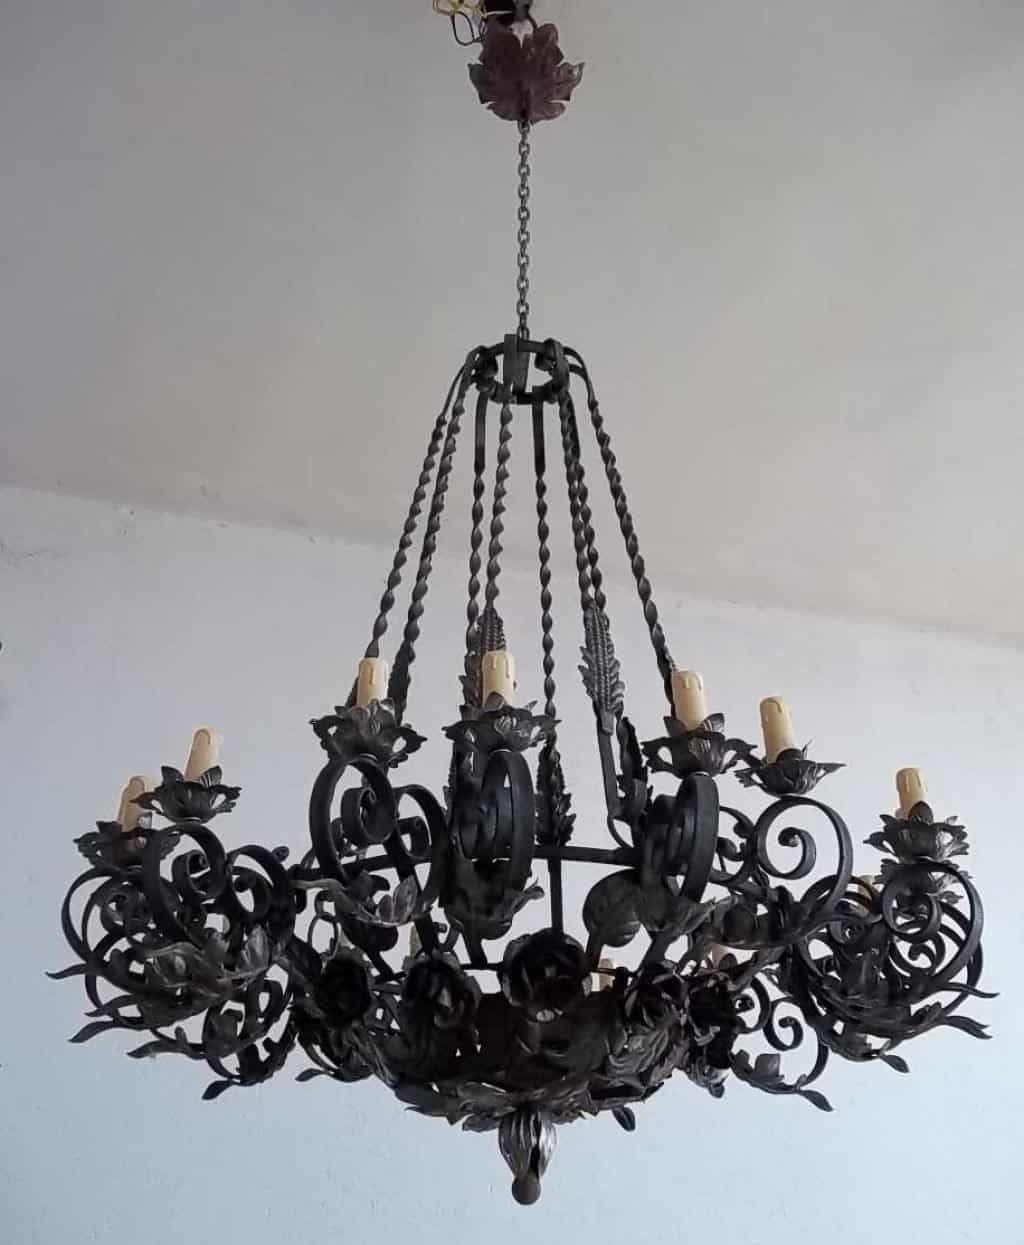 Wrought Iron Chandeliers Throughout Favorite Black Vintage Wrought Iron Chandelier Hung In The White Ceiling (View 3 of 15)